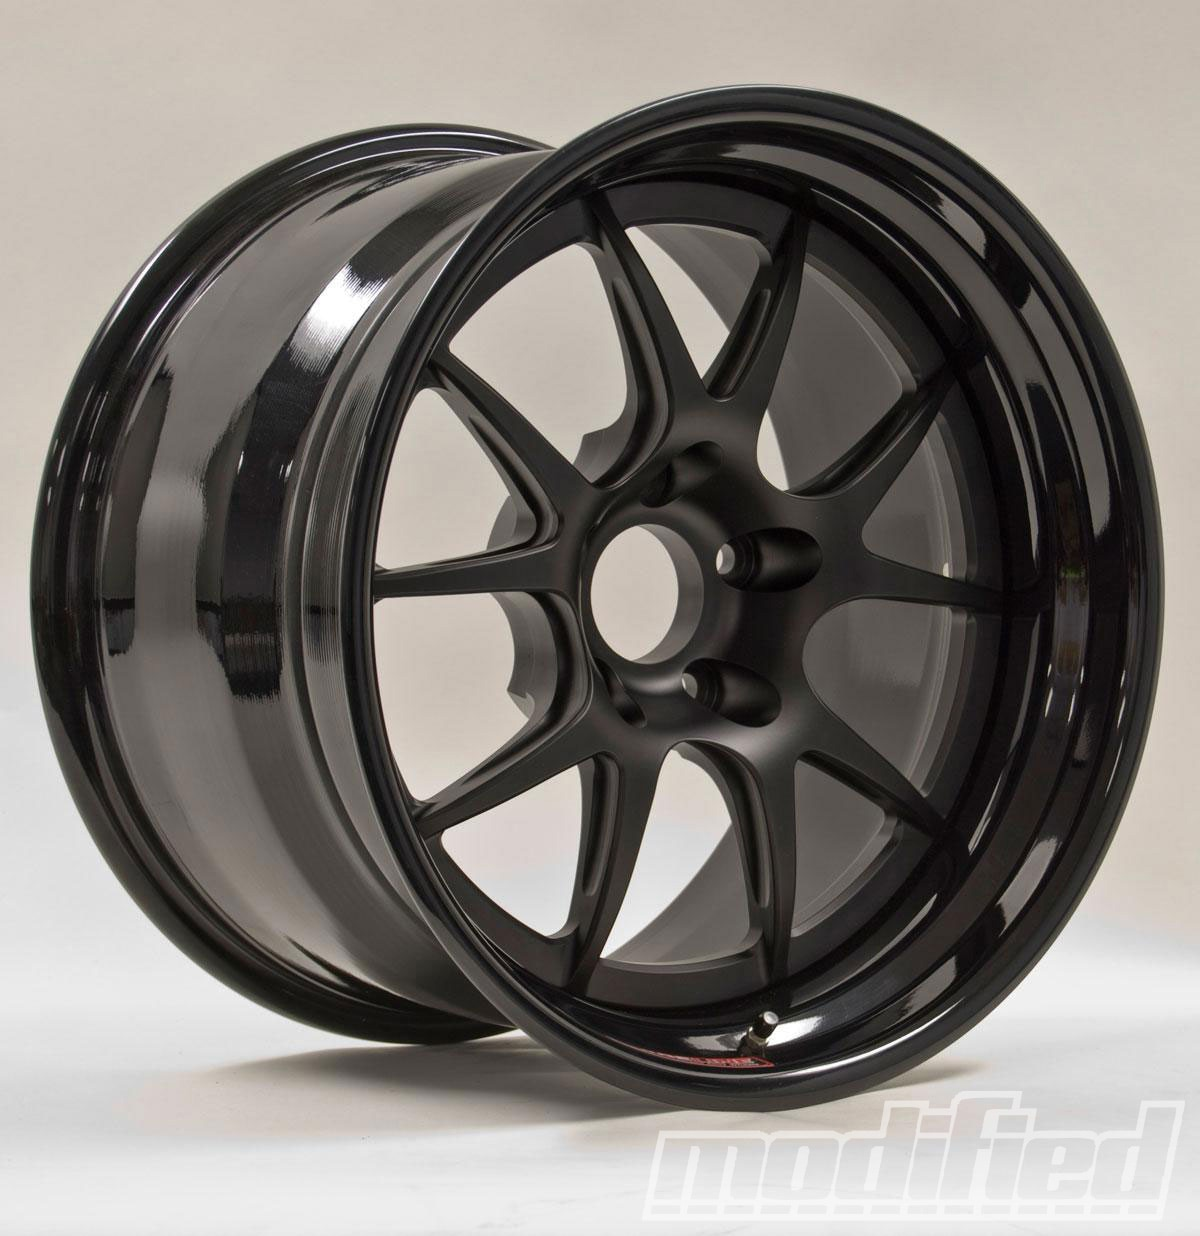 FORGELINE Center Lock Wheels Video